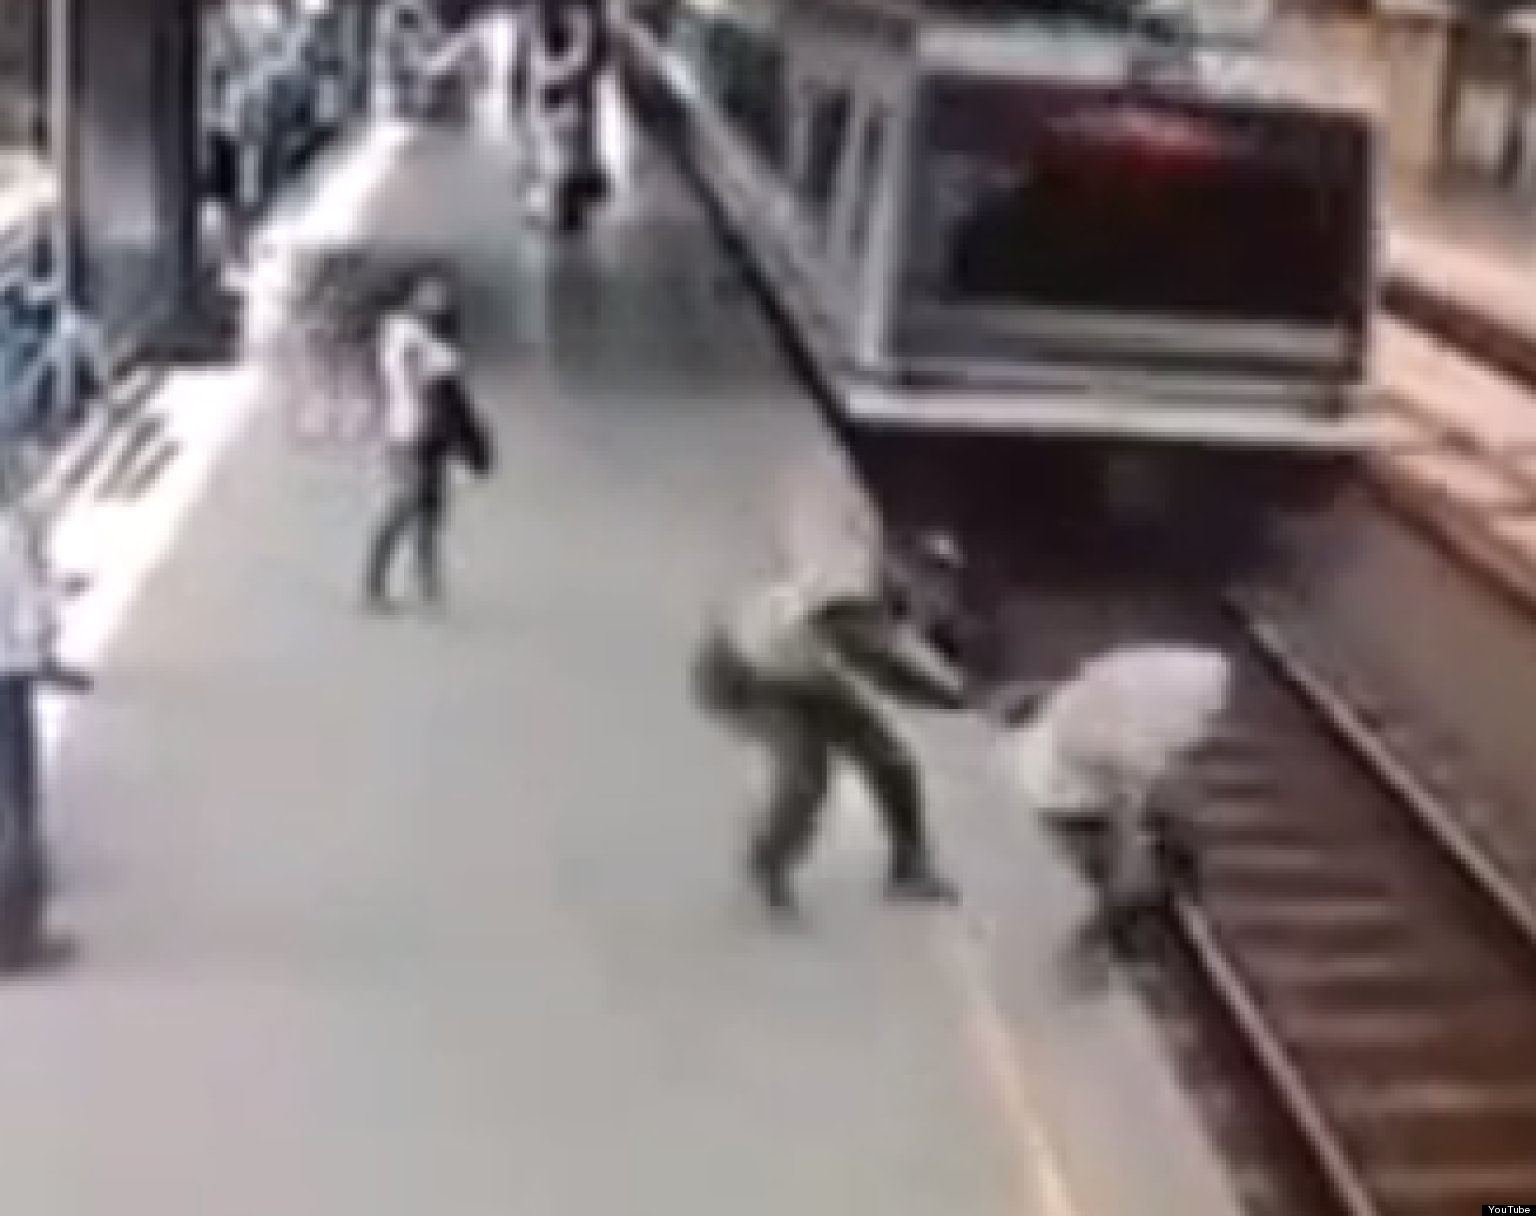 WATCH: Cop Saves Man From Train